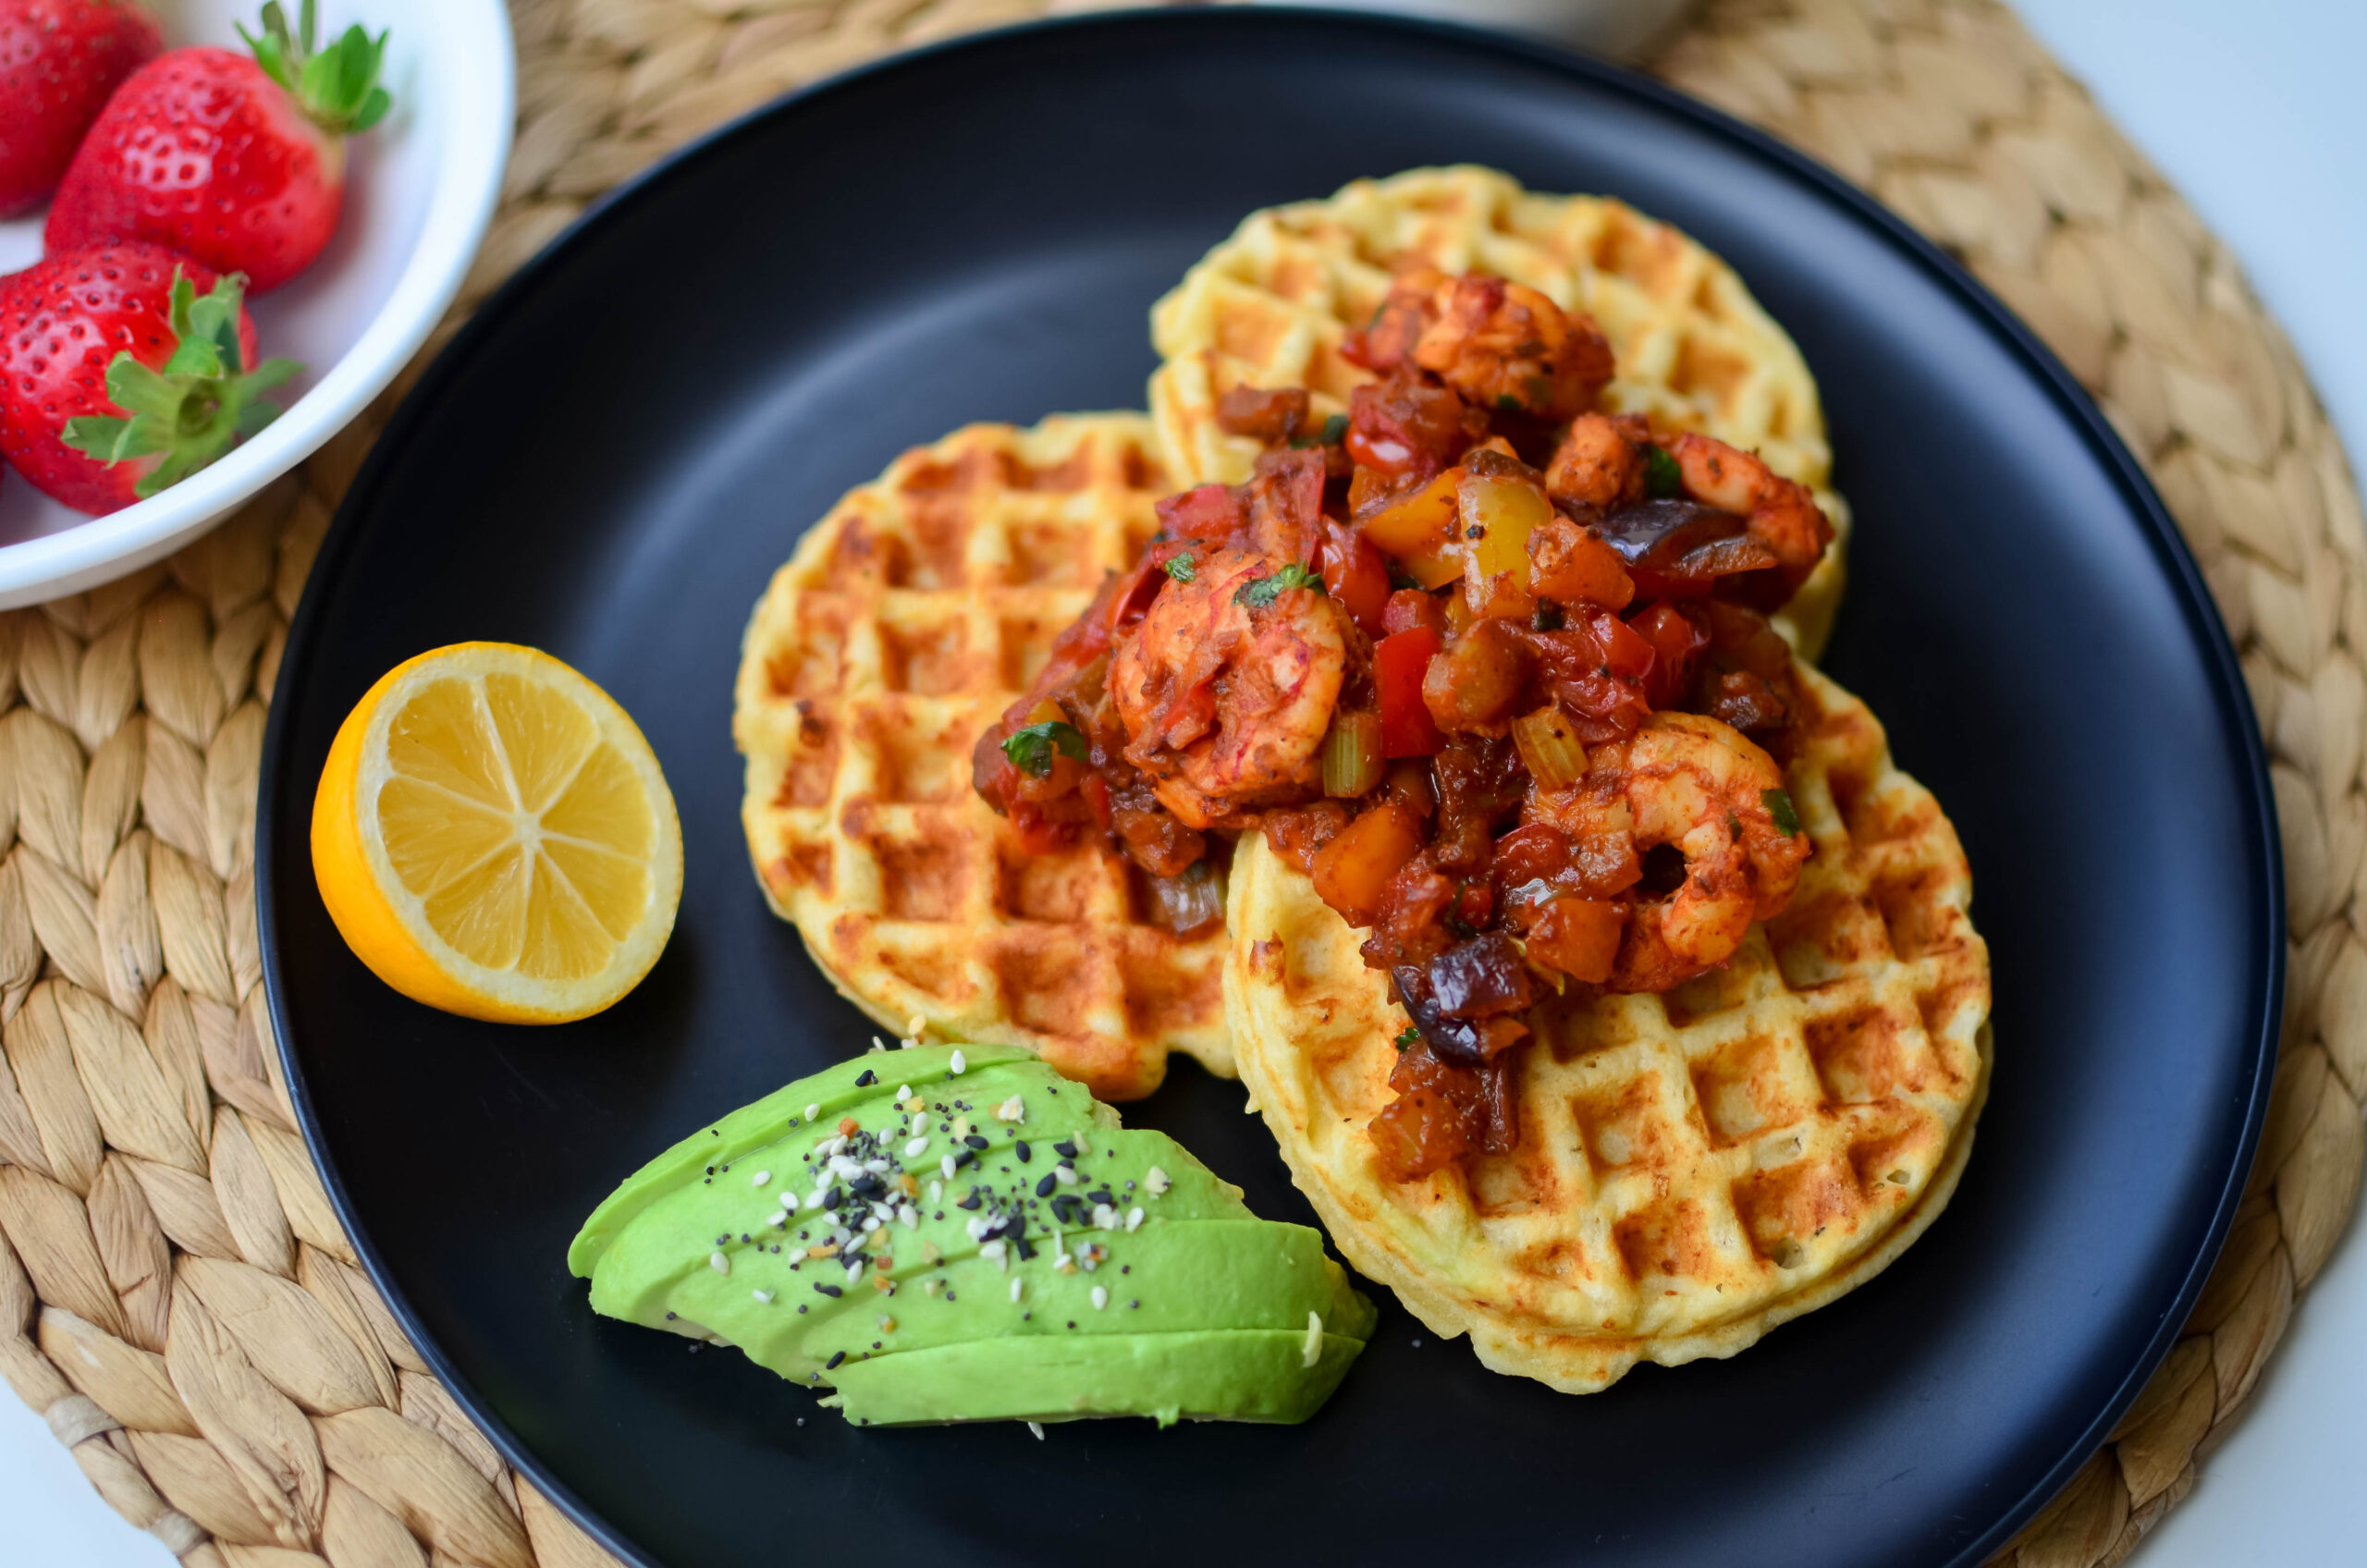 a delicious plate of Cassava corn waffles and shrimp creole with a side of avocado